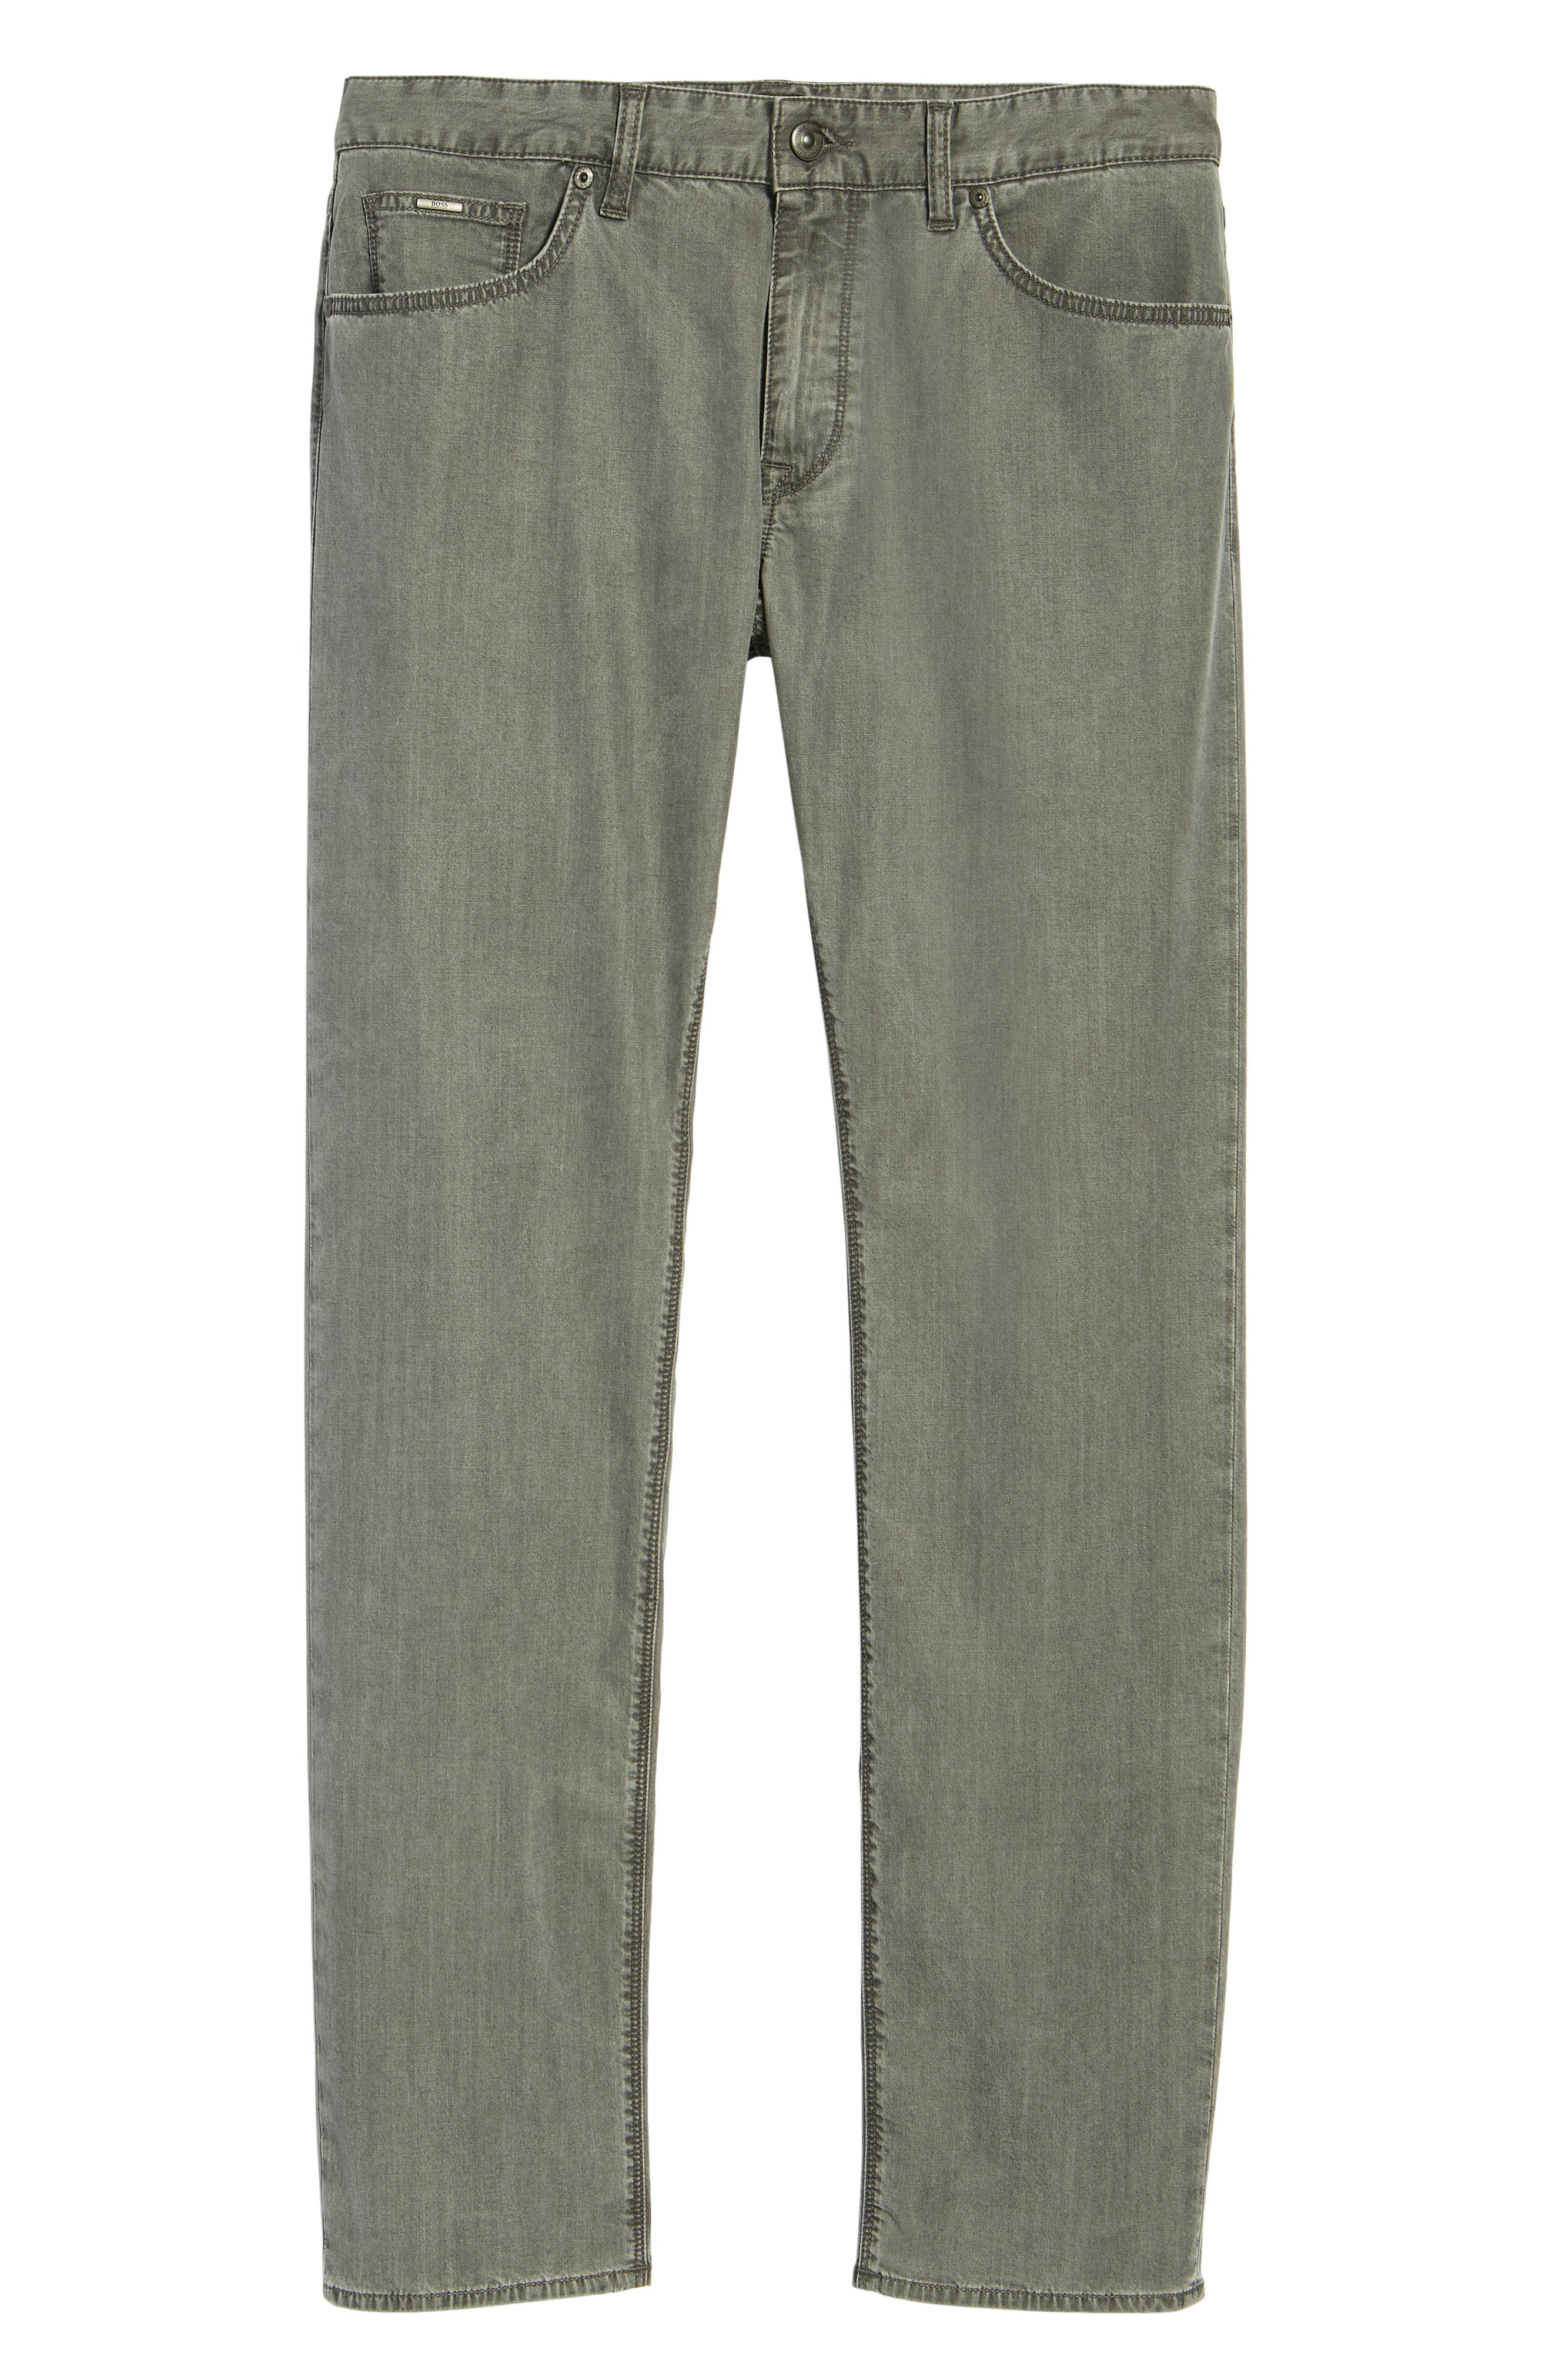 Maine Classic Fit Jeans,                             Alternate thumbnail 6, color,                             GREY